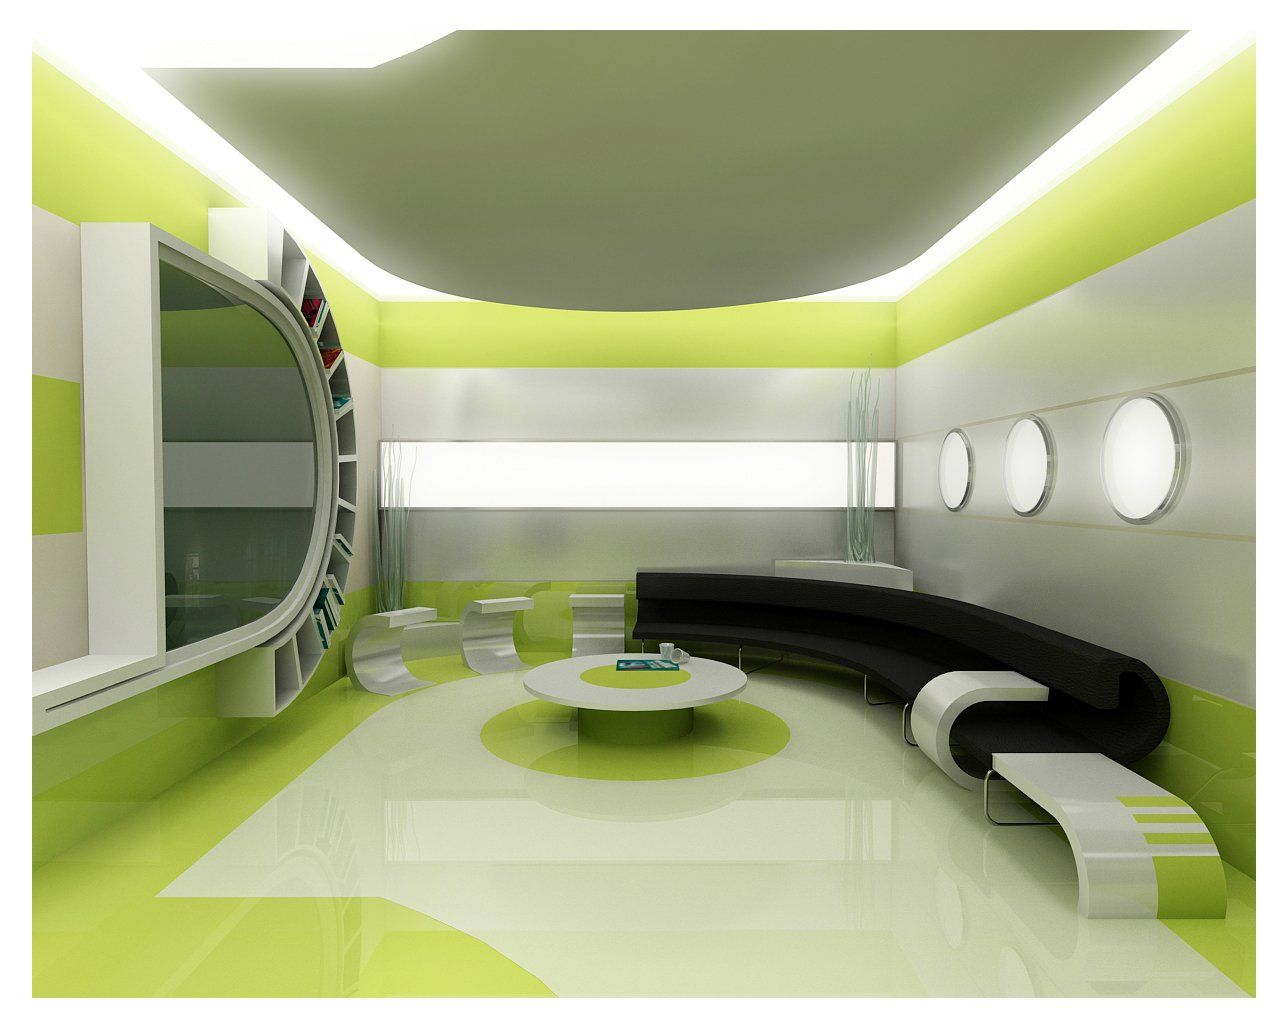 green-interior-design-1-xh4anld0dx-1280x1024.jpg